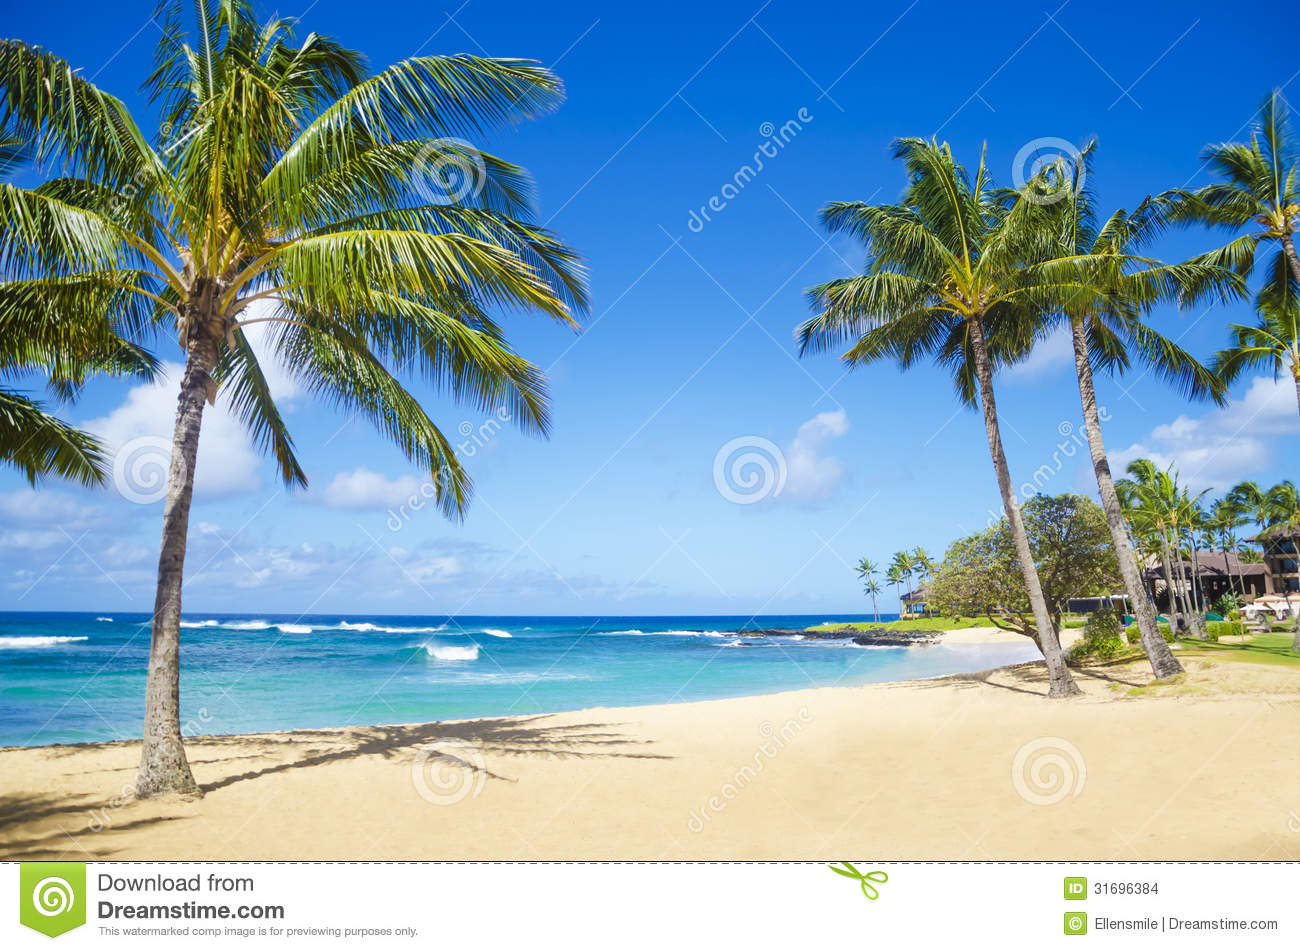 Palm trees on the sandy beach in hawaii stock photo image of palm trees on the sandy beach in hawaii outdoors coconut voltagebd Image collections